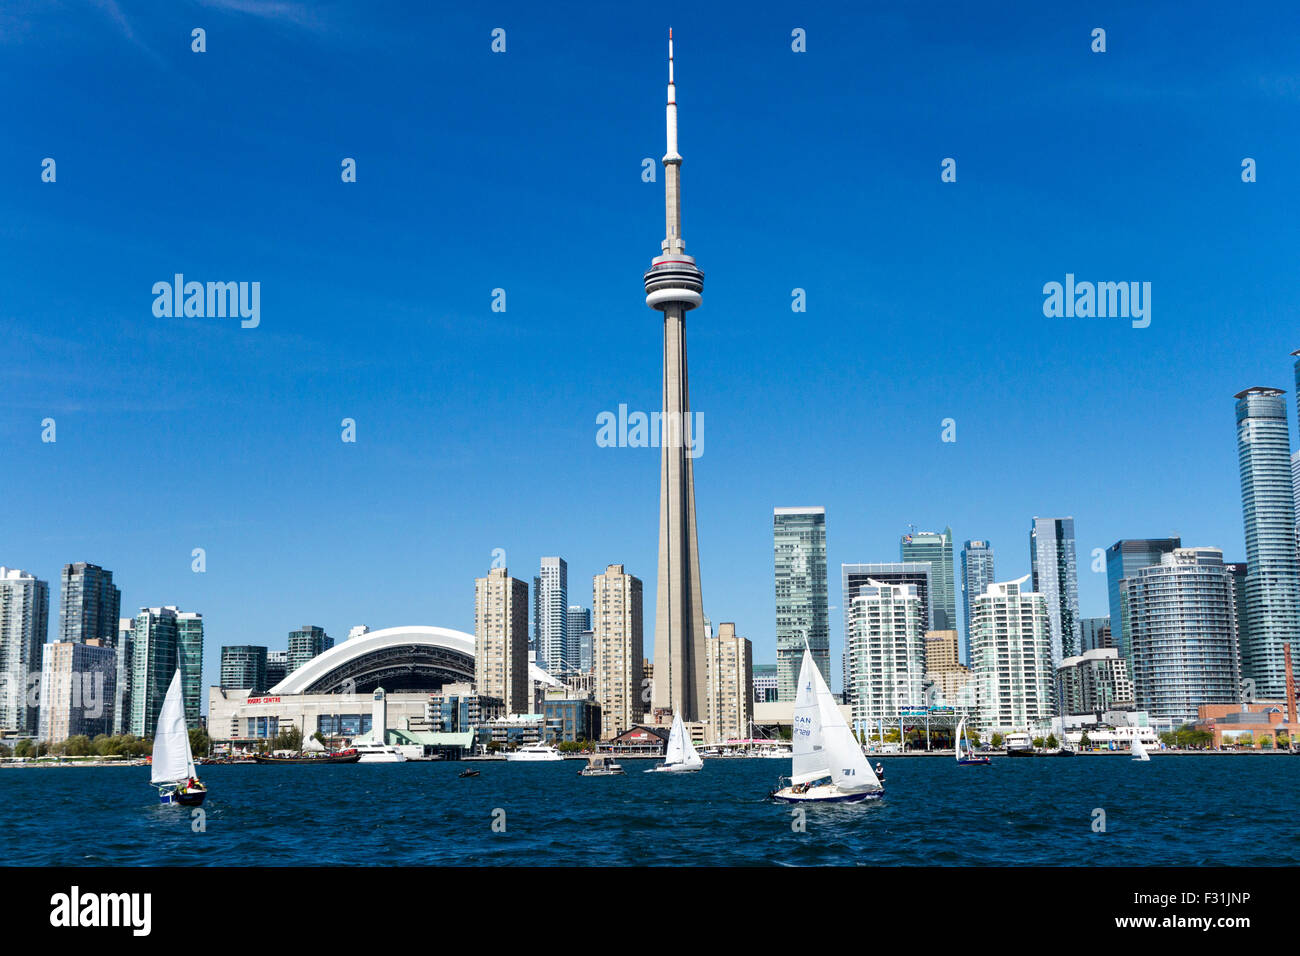 toronto-city-skyline-with-rogers-centre-